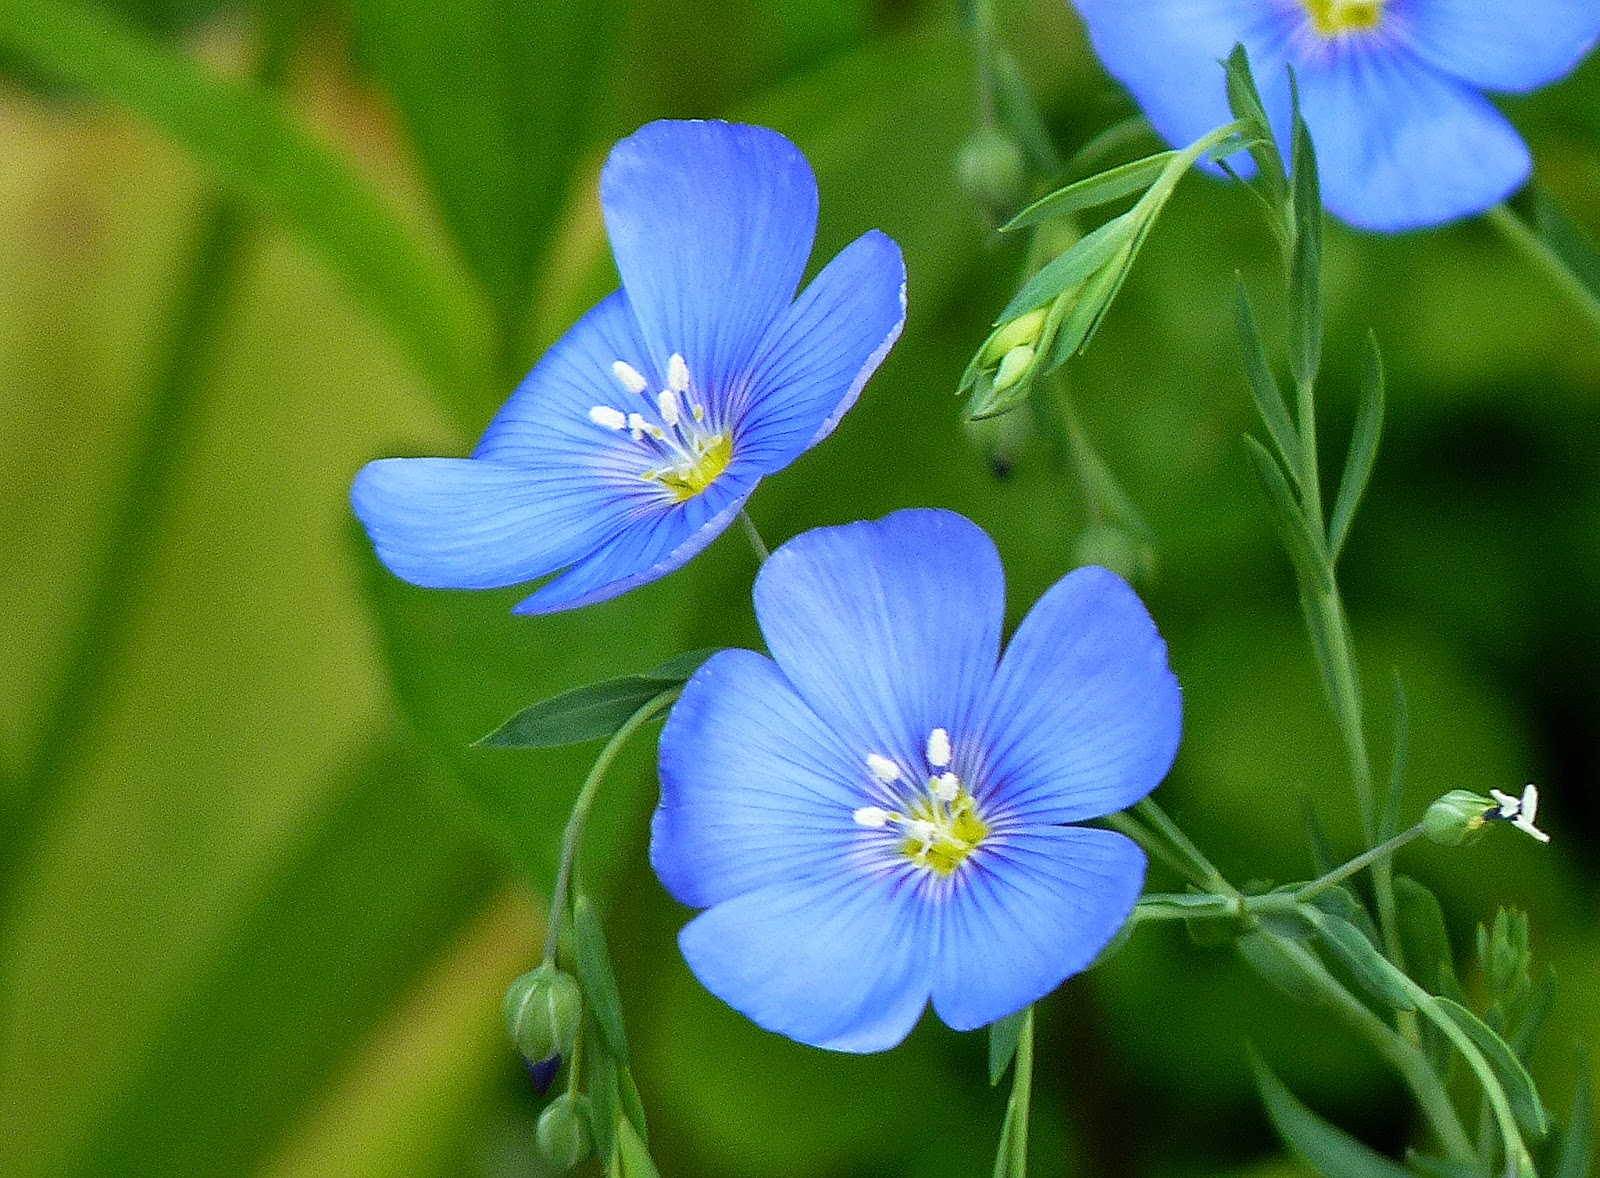 Herbal Plants March 2015